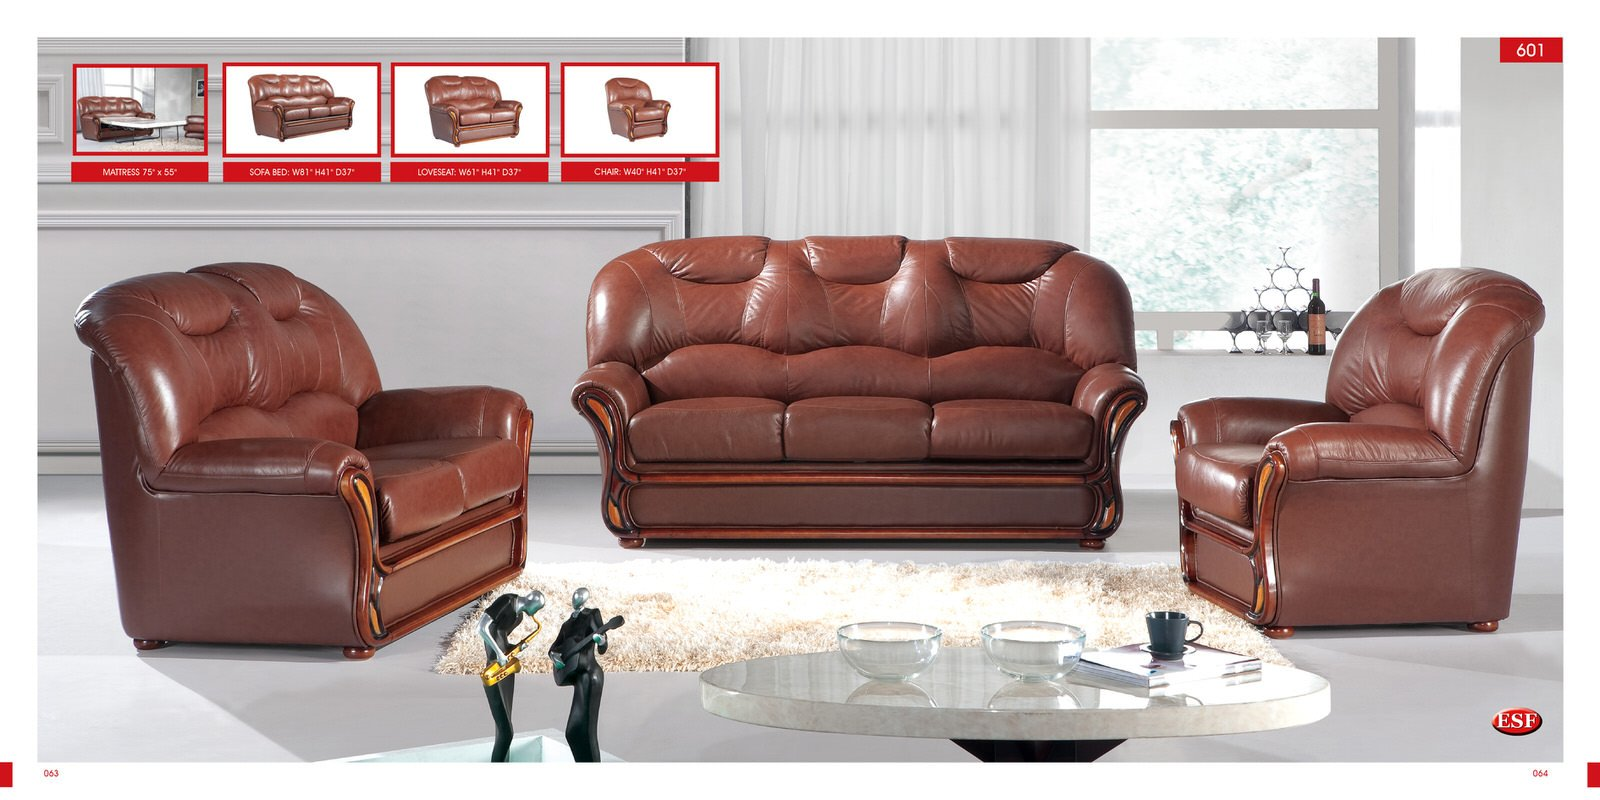 Sofa Bed 601 Brown Leather By ESF